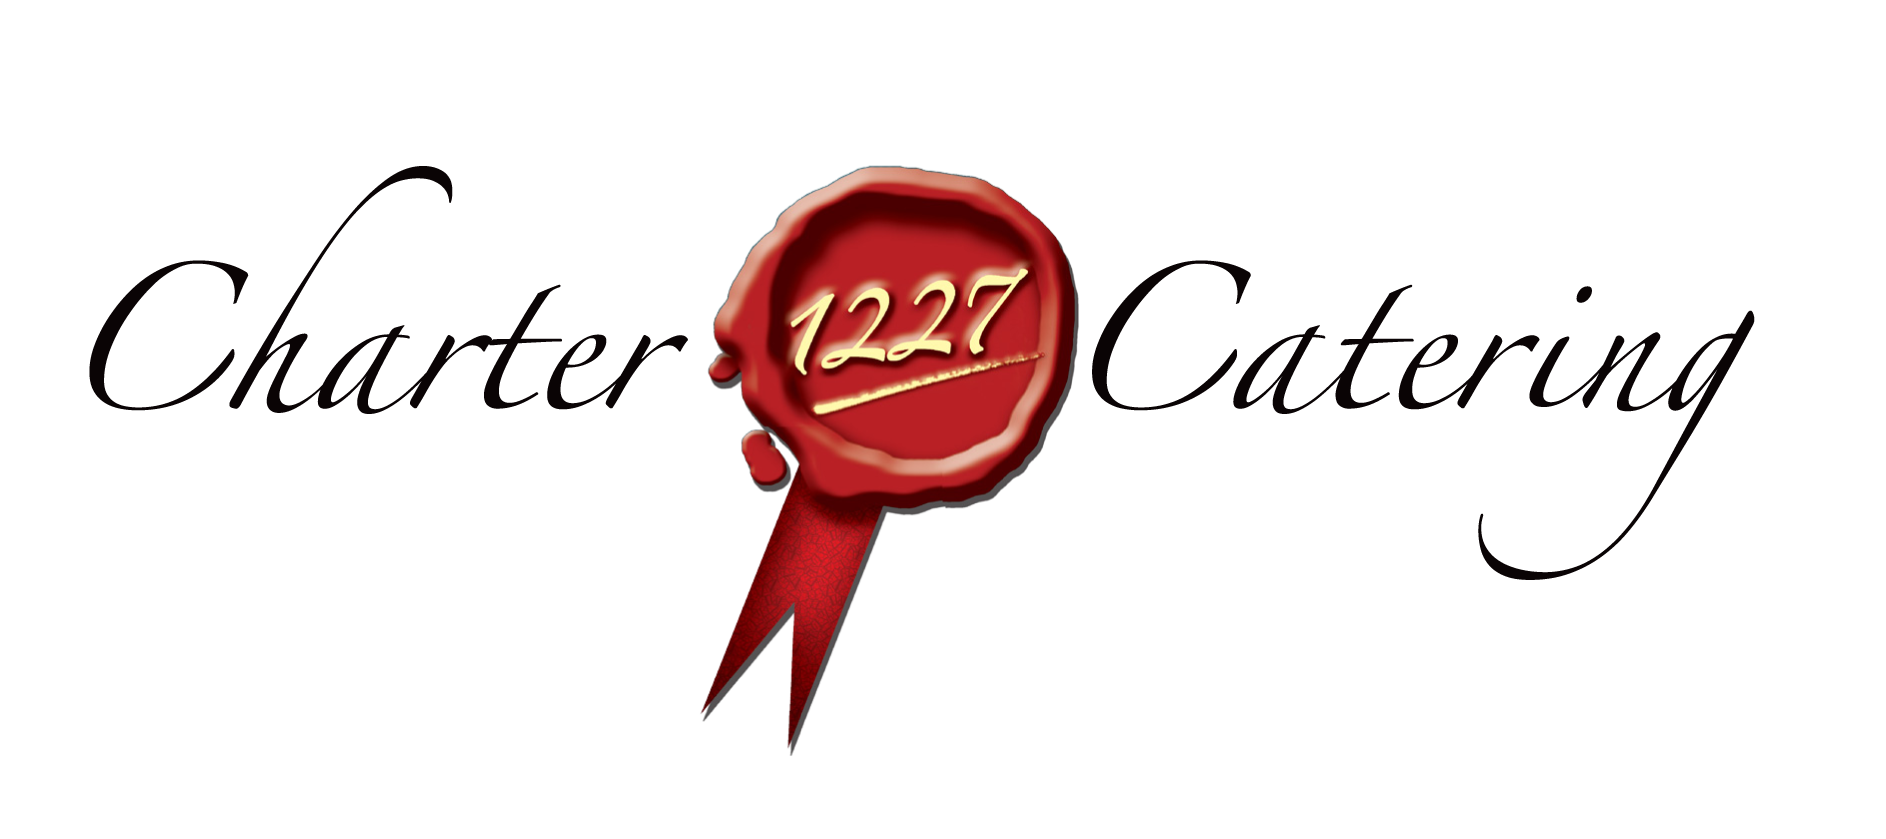 Charter 1227 Catering